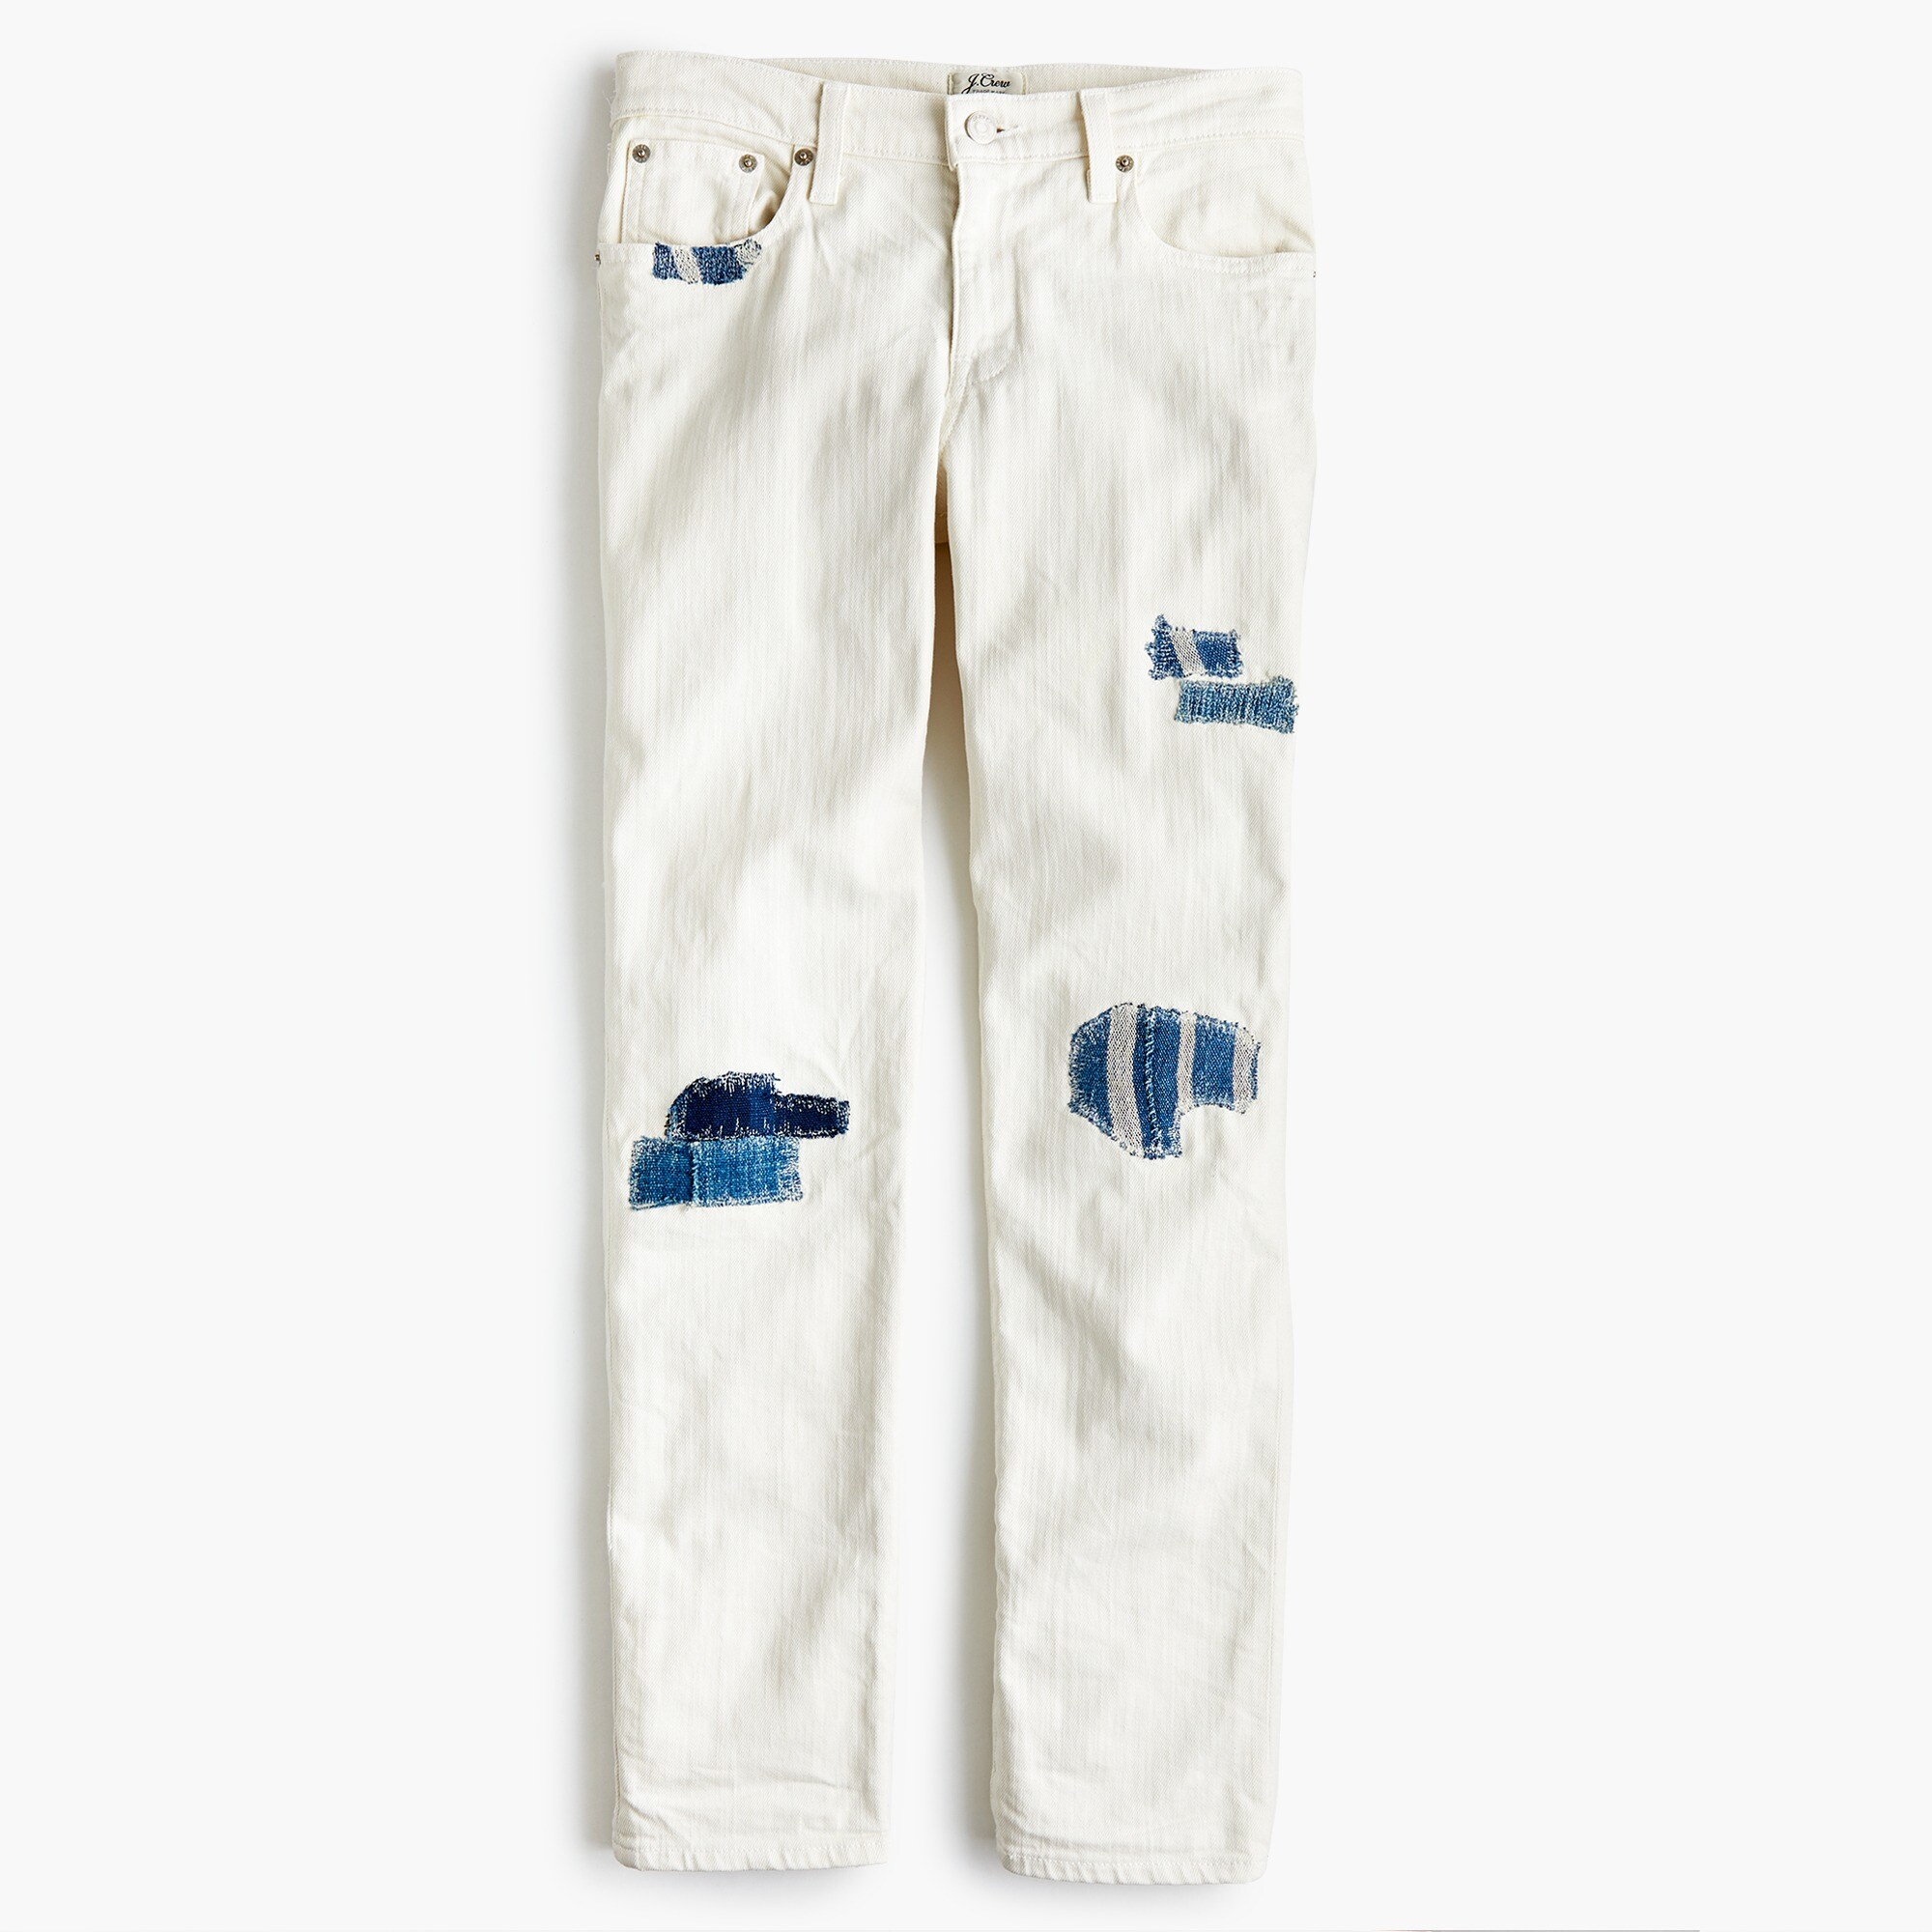 Image 1 for Sean Hornbeak for J.Crew slim boyfriend jean with indigo patches in white